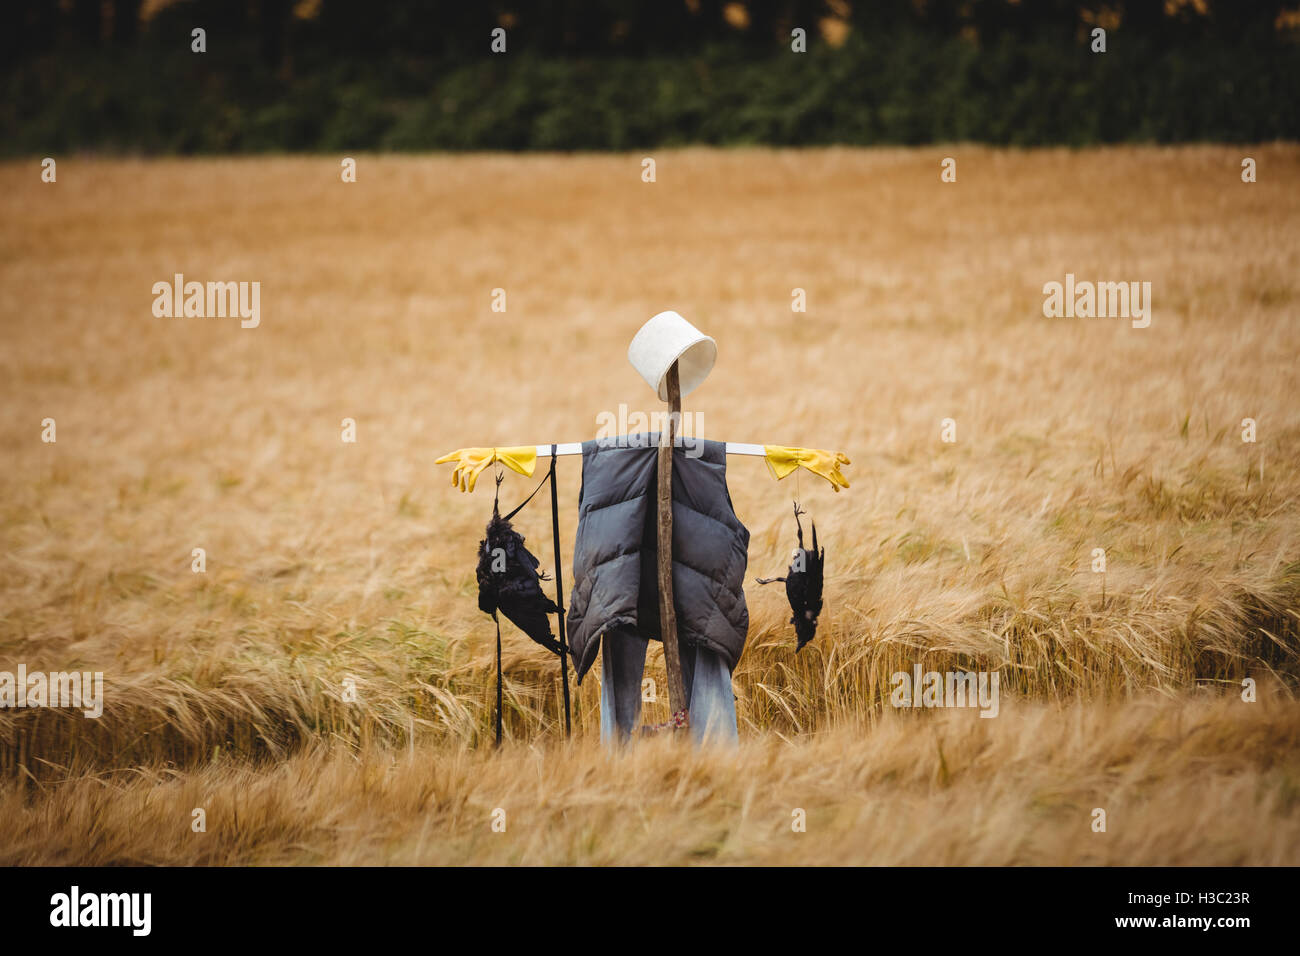 Scare crow standing in front of wheat field - Stock Image